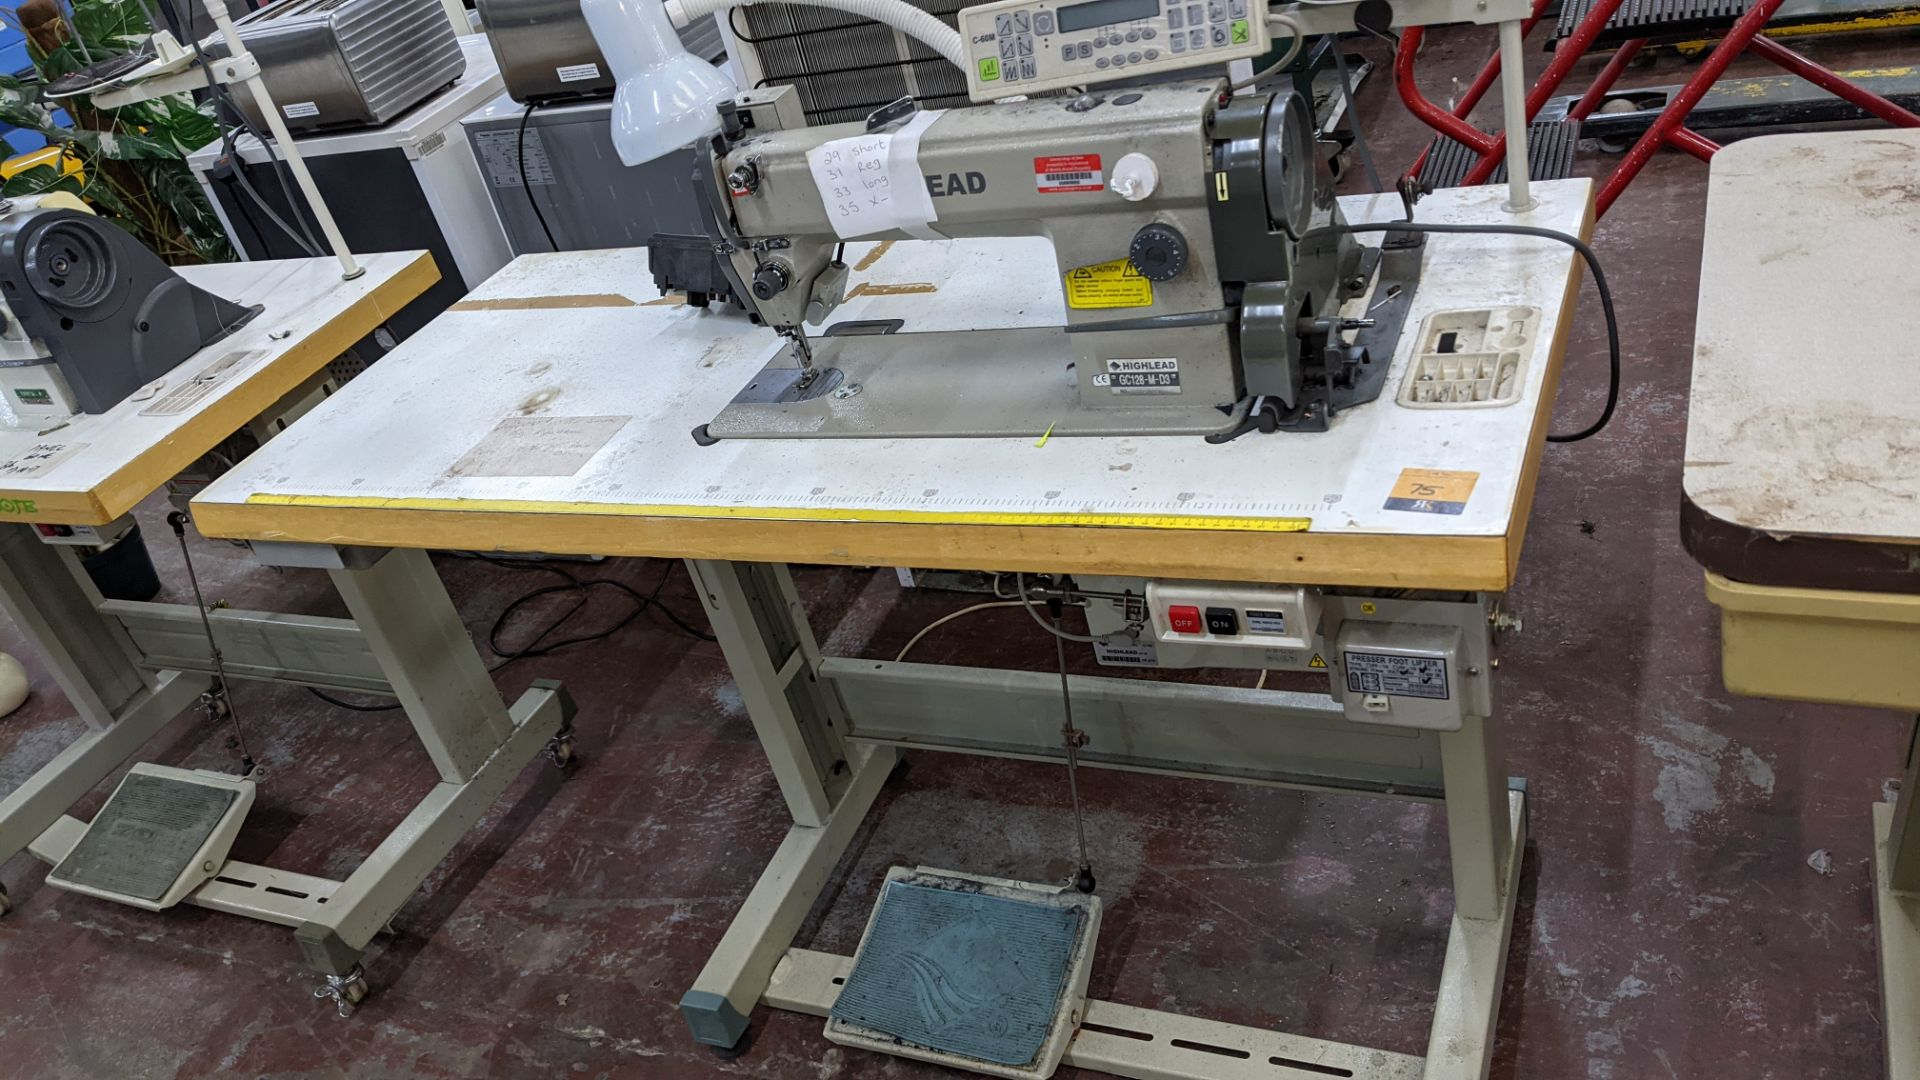 Highlead model GC128-M-D3 sewing machine with model C-60M digital controller - Image 2 of 17